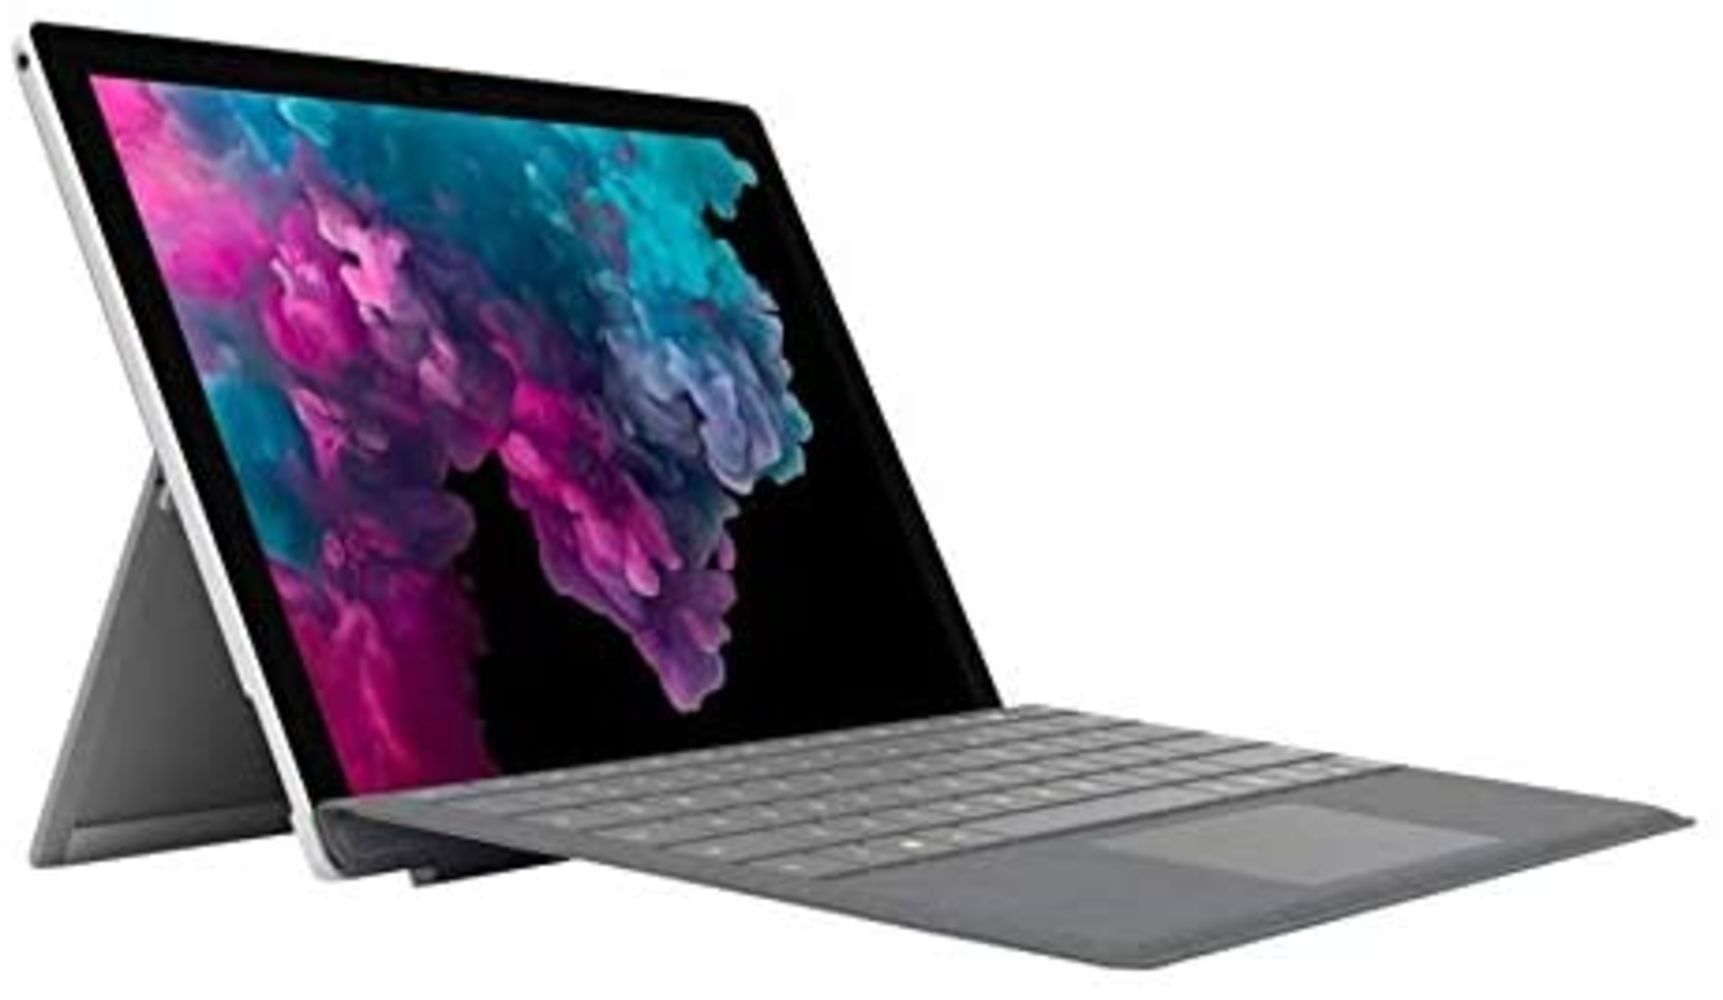 60 x iPads &18 x Microsoft Surface Pro. To be sold in 2 lots. Samsung Galaxy Note 9. Ideal re-sell opportunity. DELIVERY AVAILABLE ON ALL LOTS